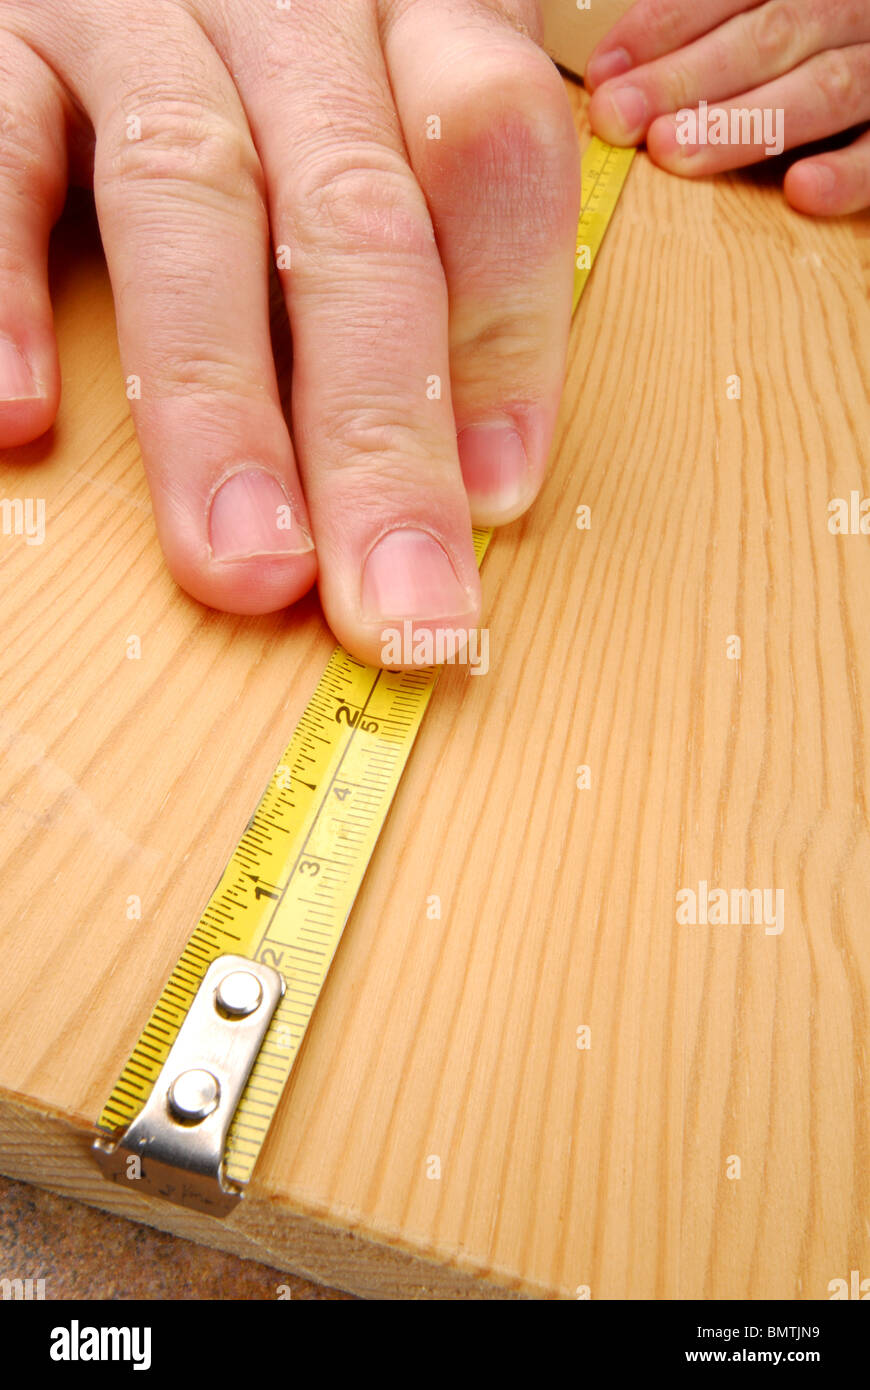 Carpenter is measuring wood, very close - Stock Image